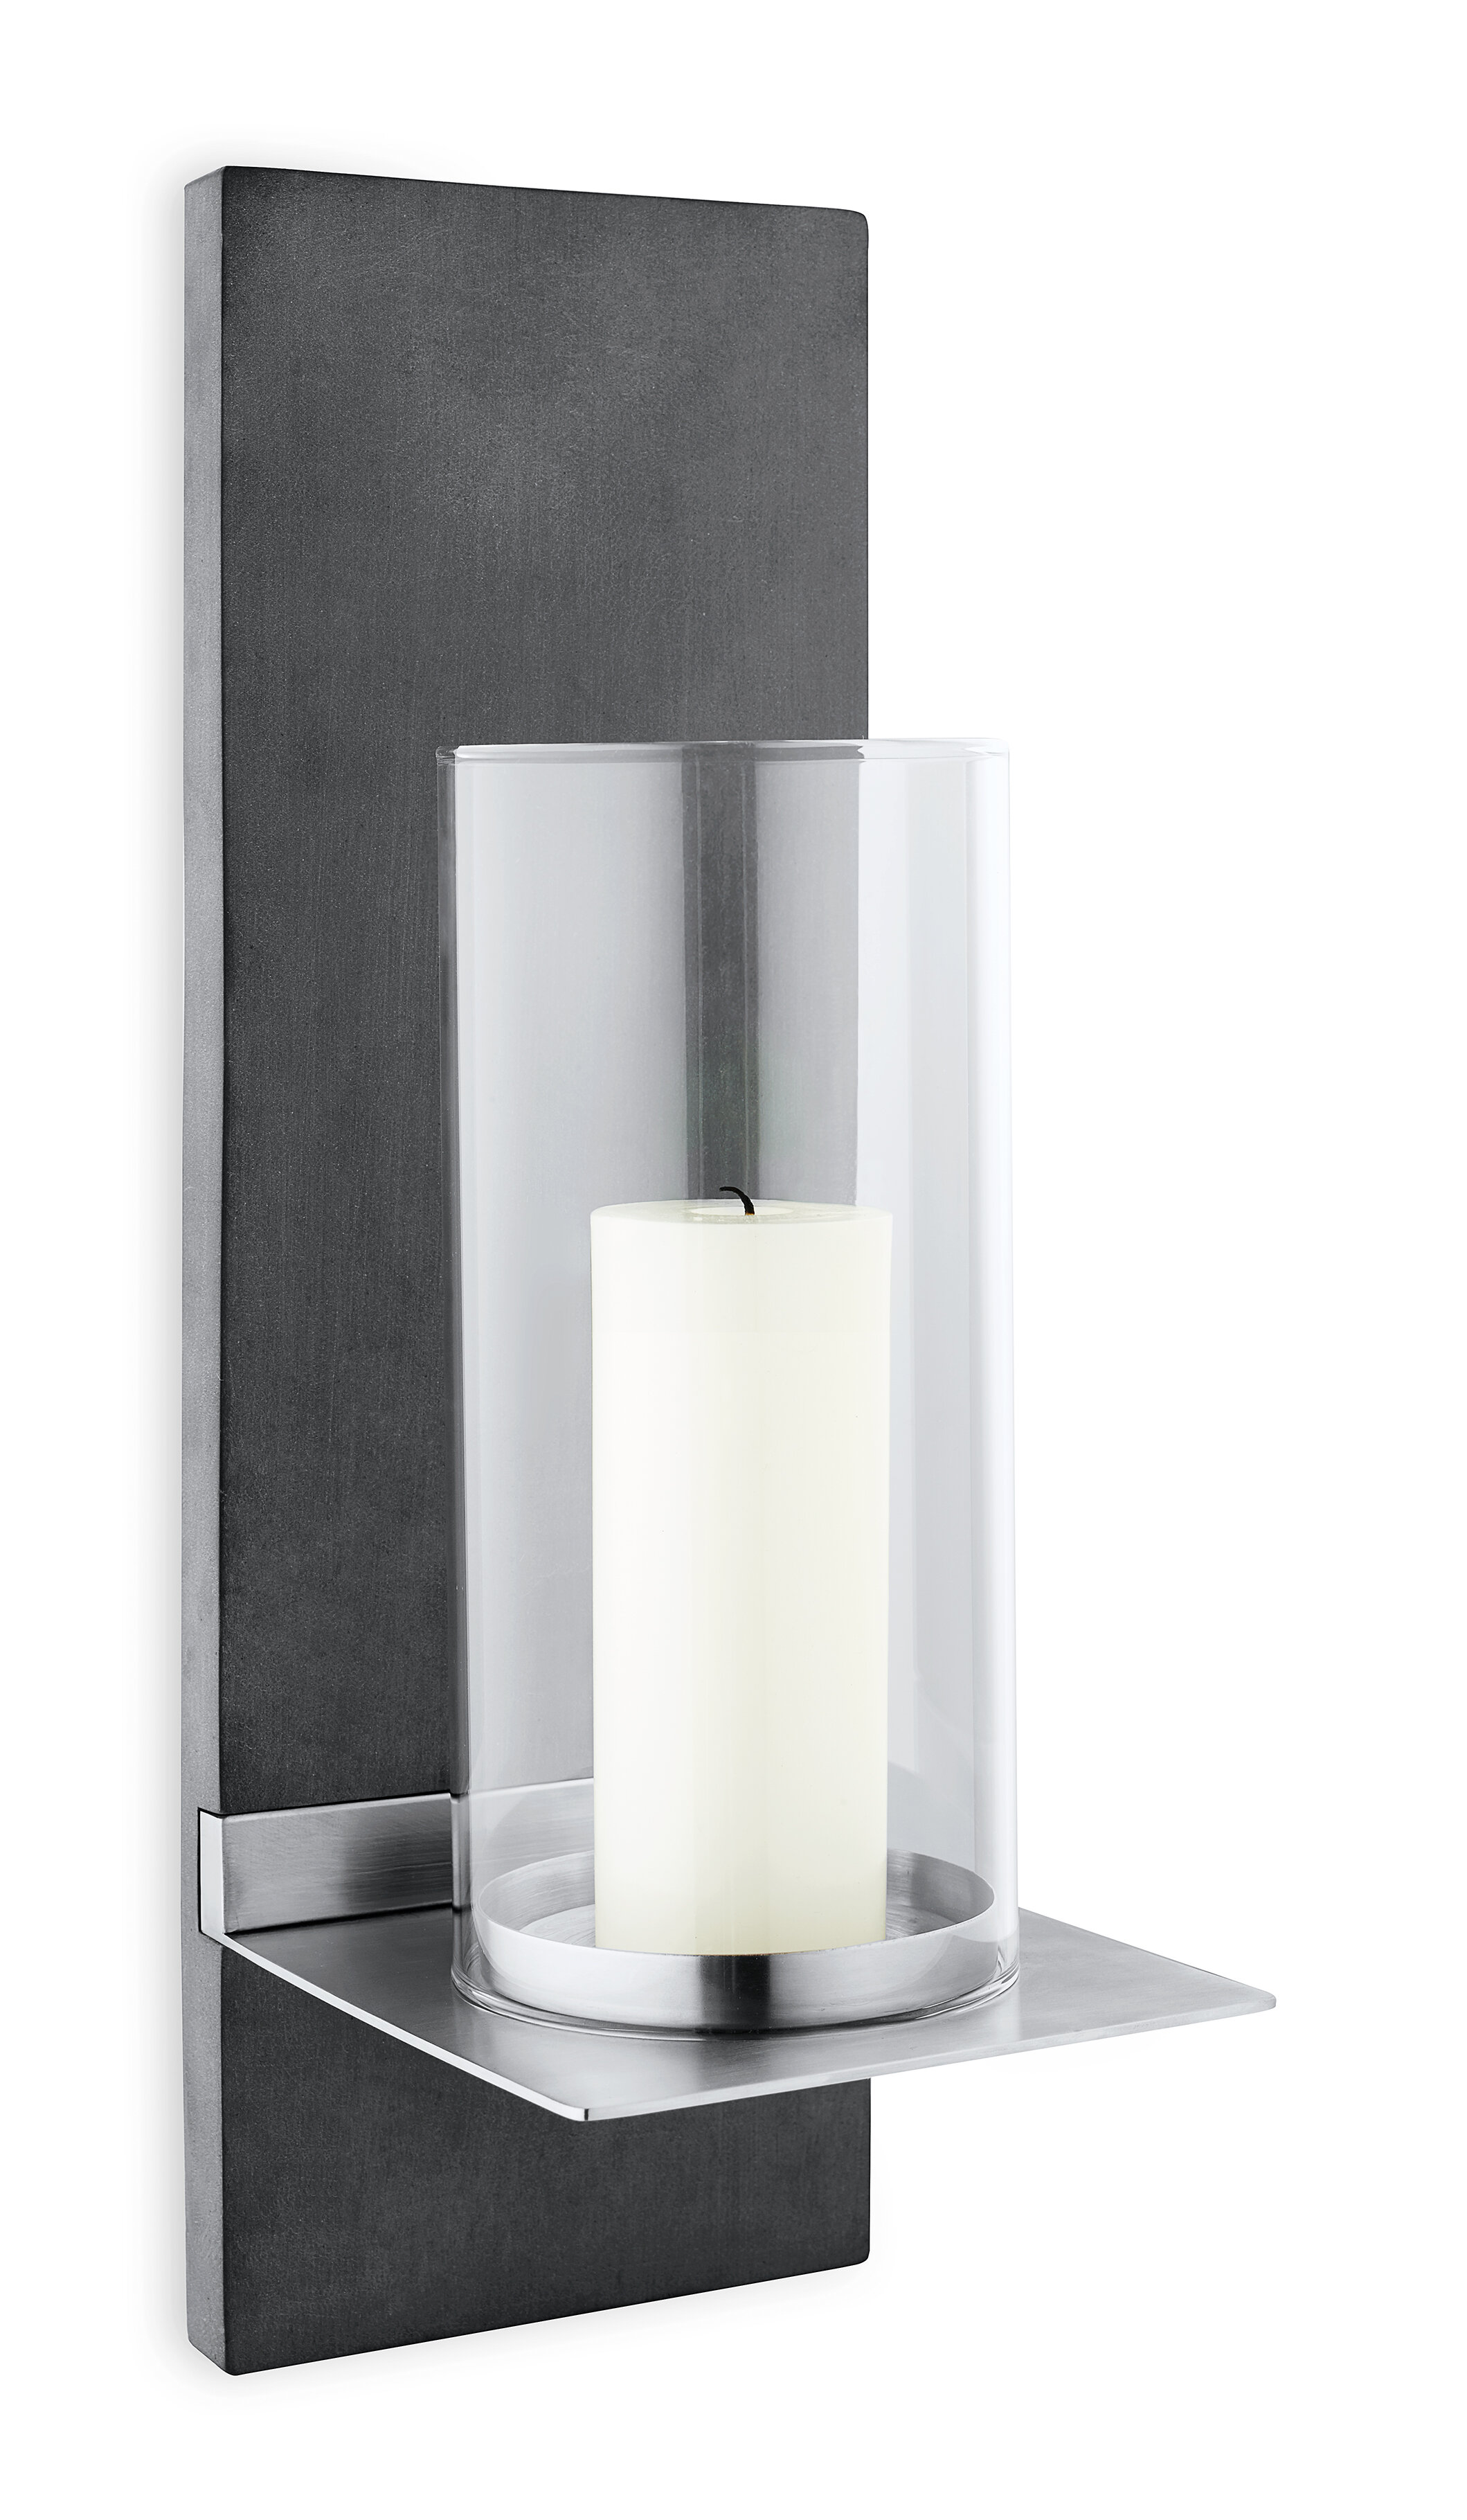 Finca Stainless Steel Wall Sconce